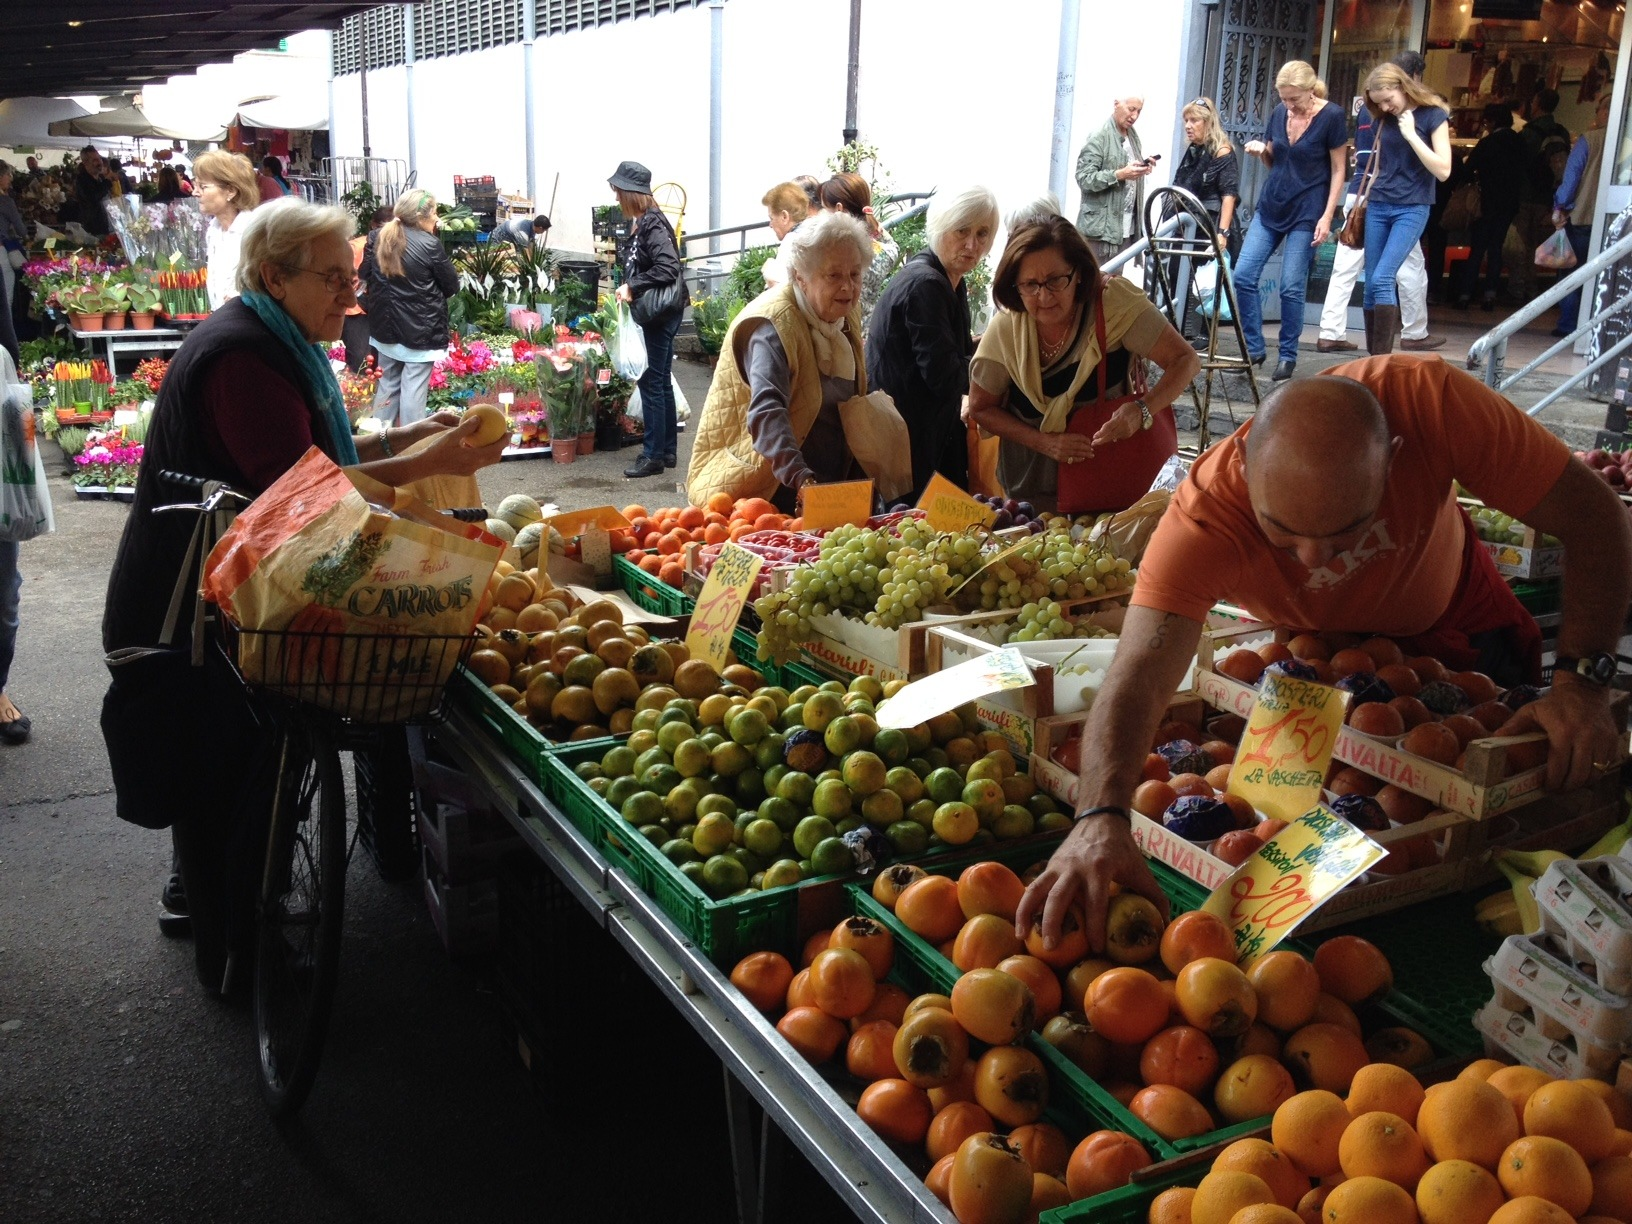 We loved the fact that people of all ages were enjoying the market.